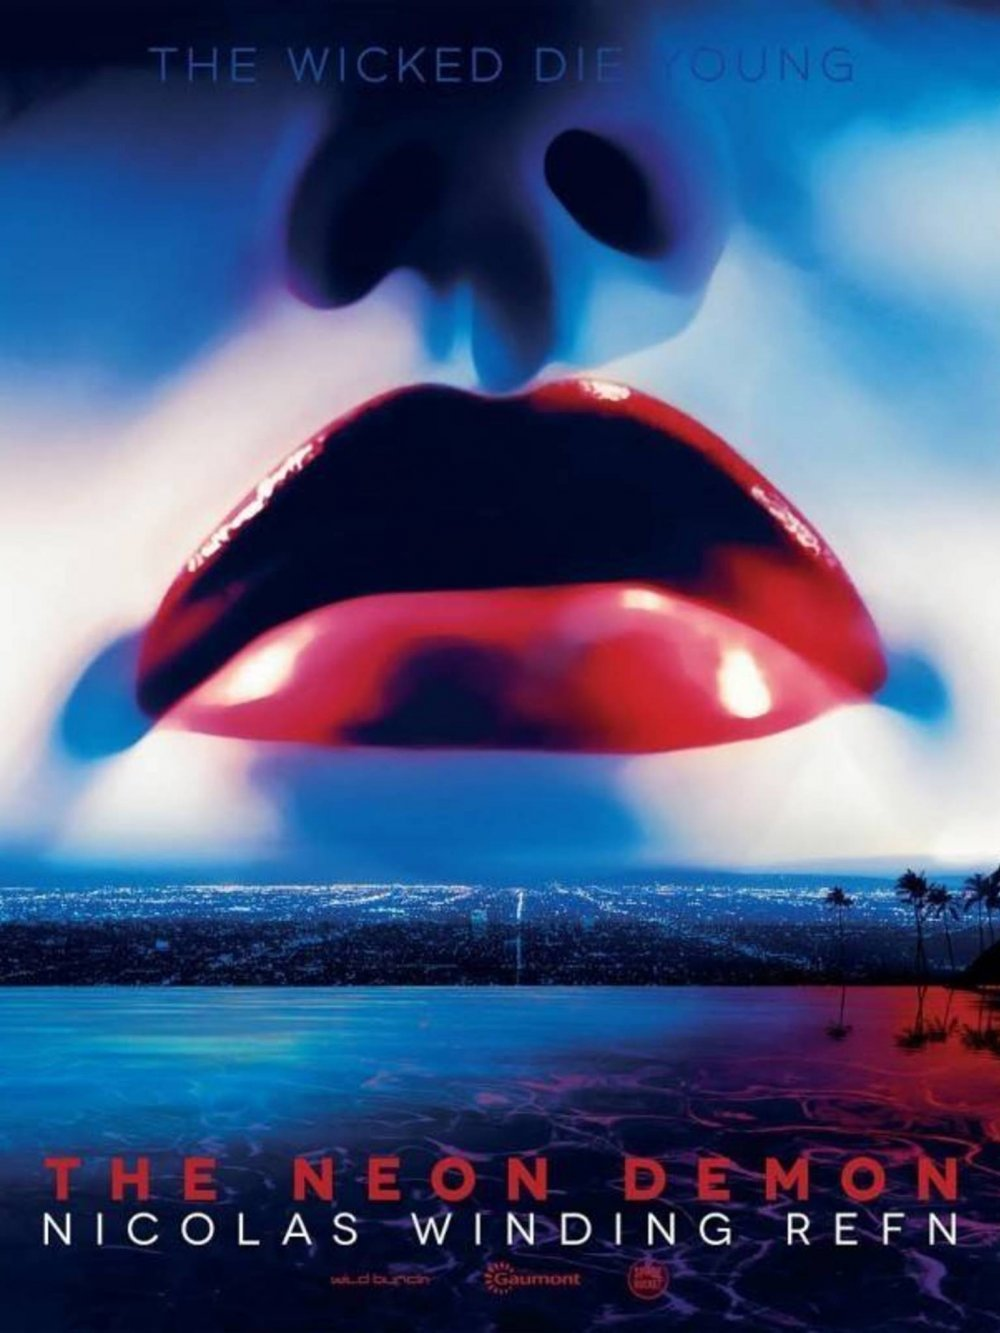 A festival poster for The Neon Demon (2016)